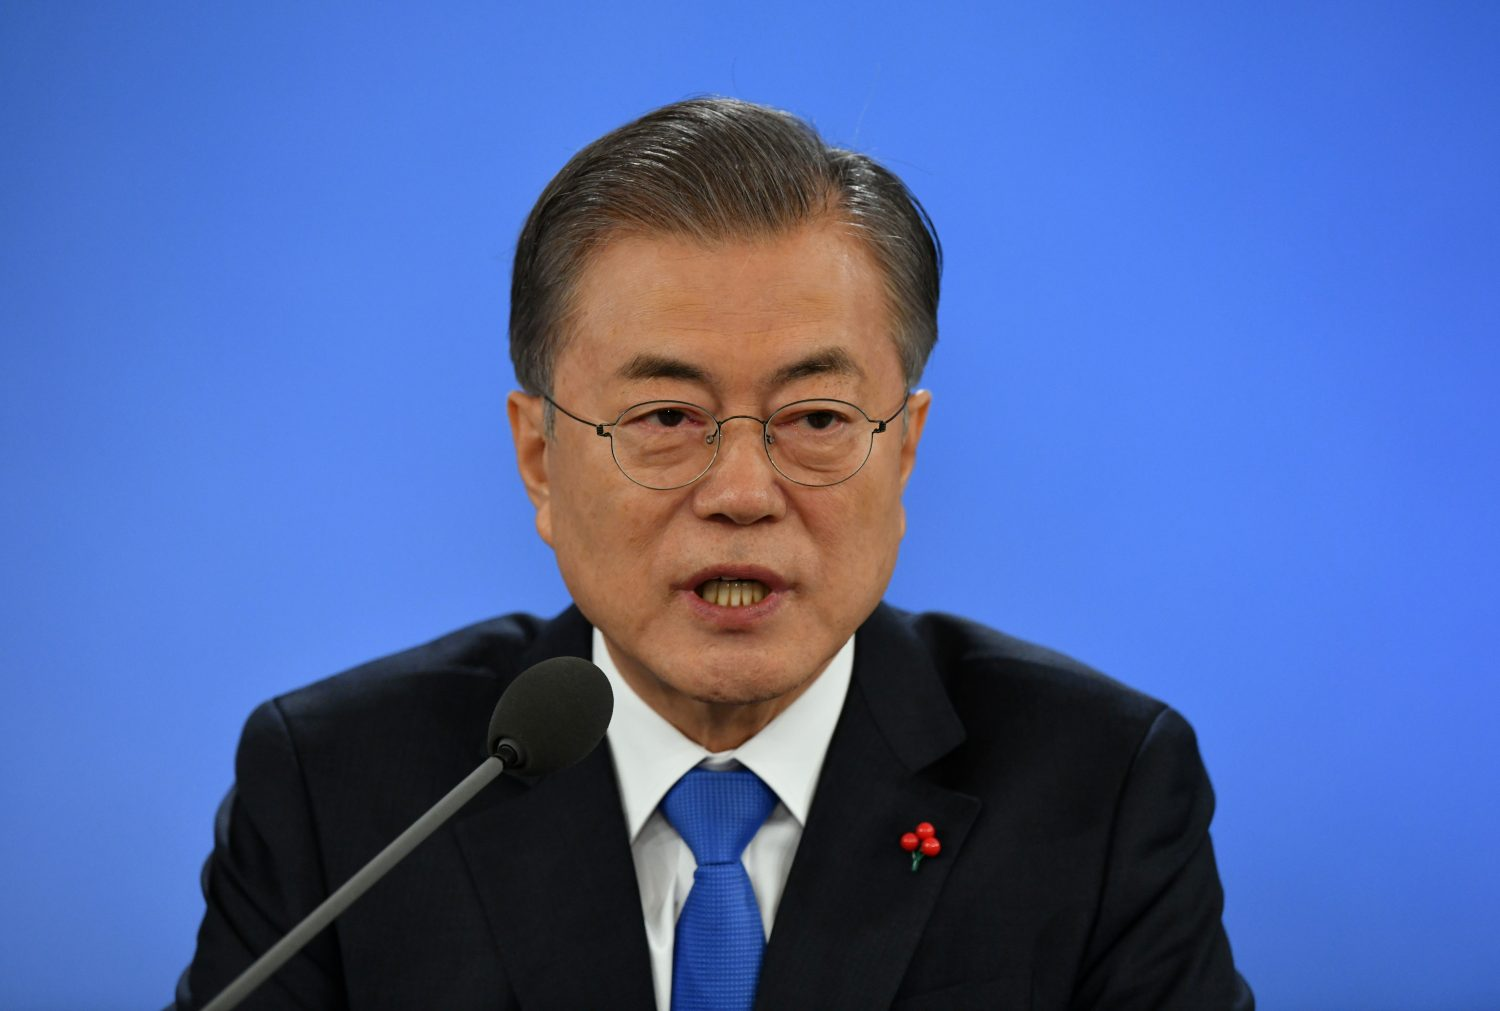 FILE PHOTO: South Korean President Moon Jae-in holds his New Year press conference at the presidential Blue House in Seoul on January 10, 2019. Jung Yeon-je/Pool via REUTERS